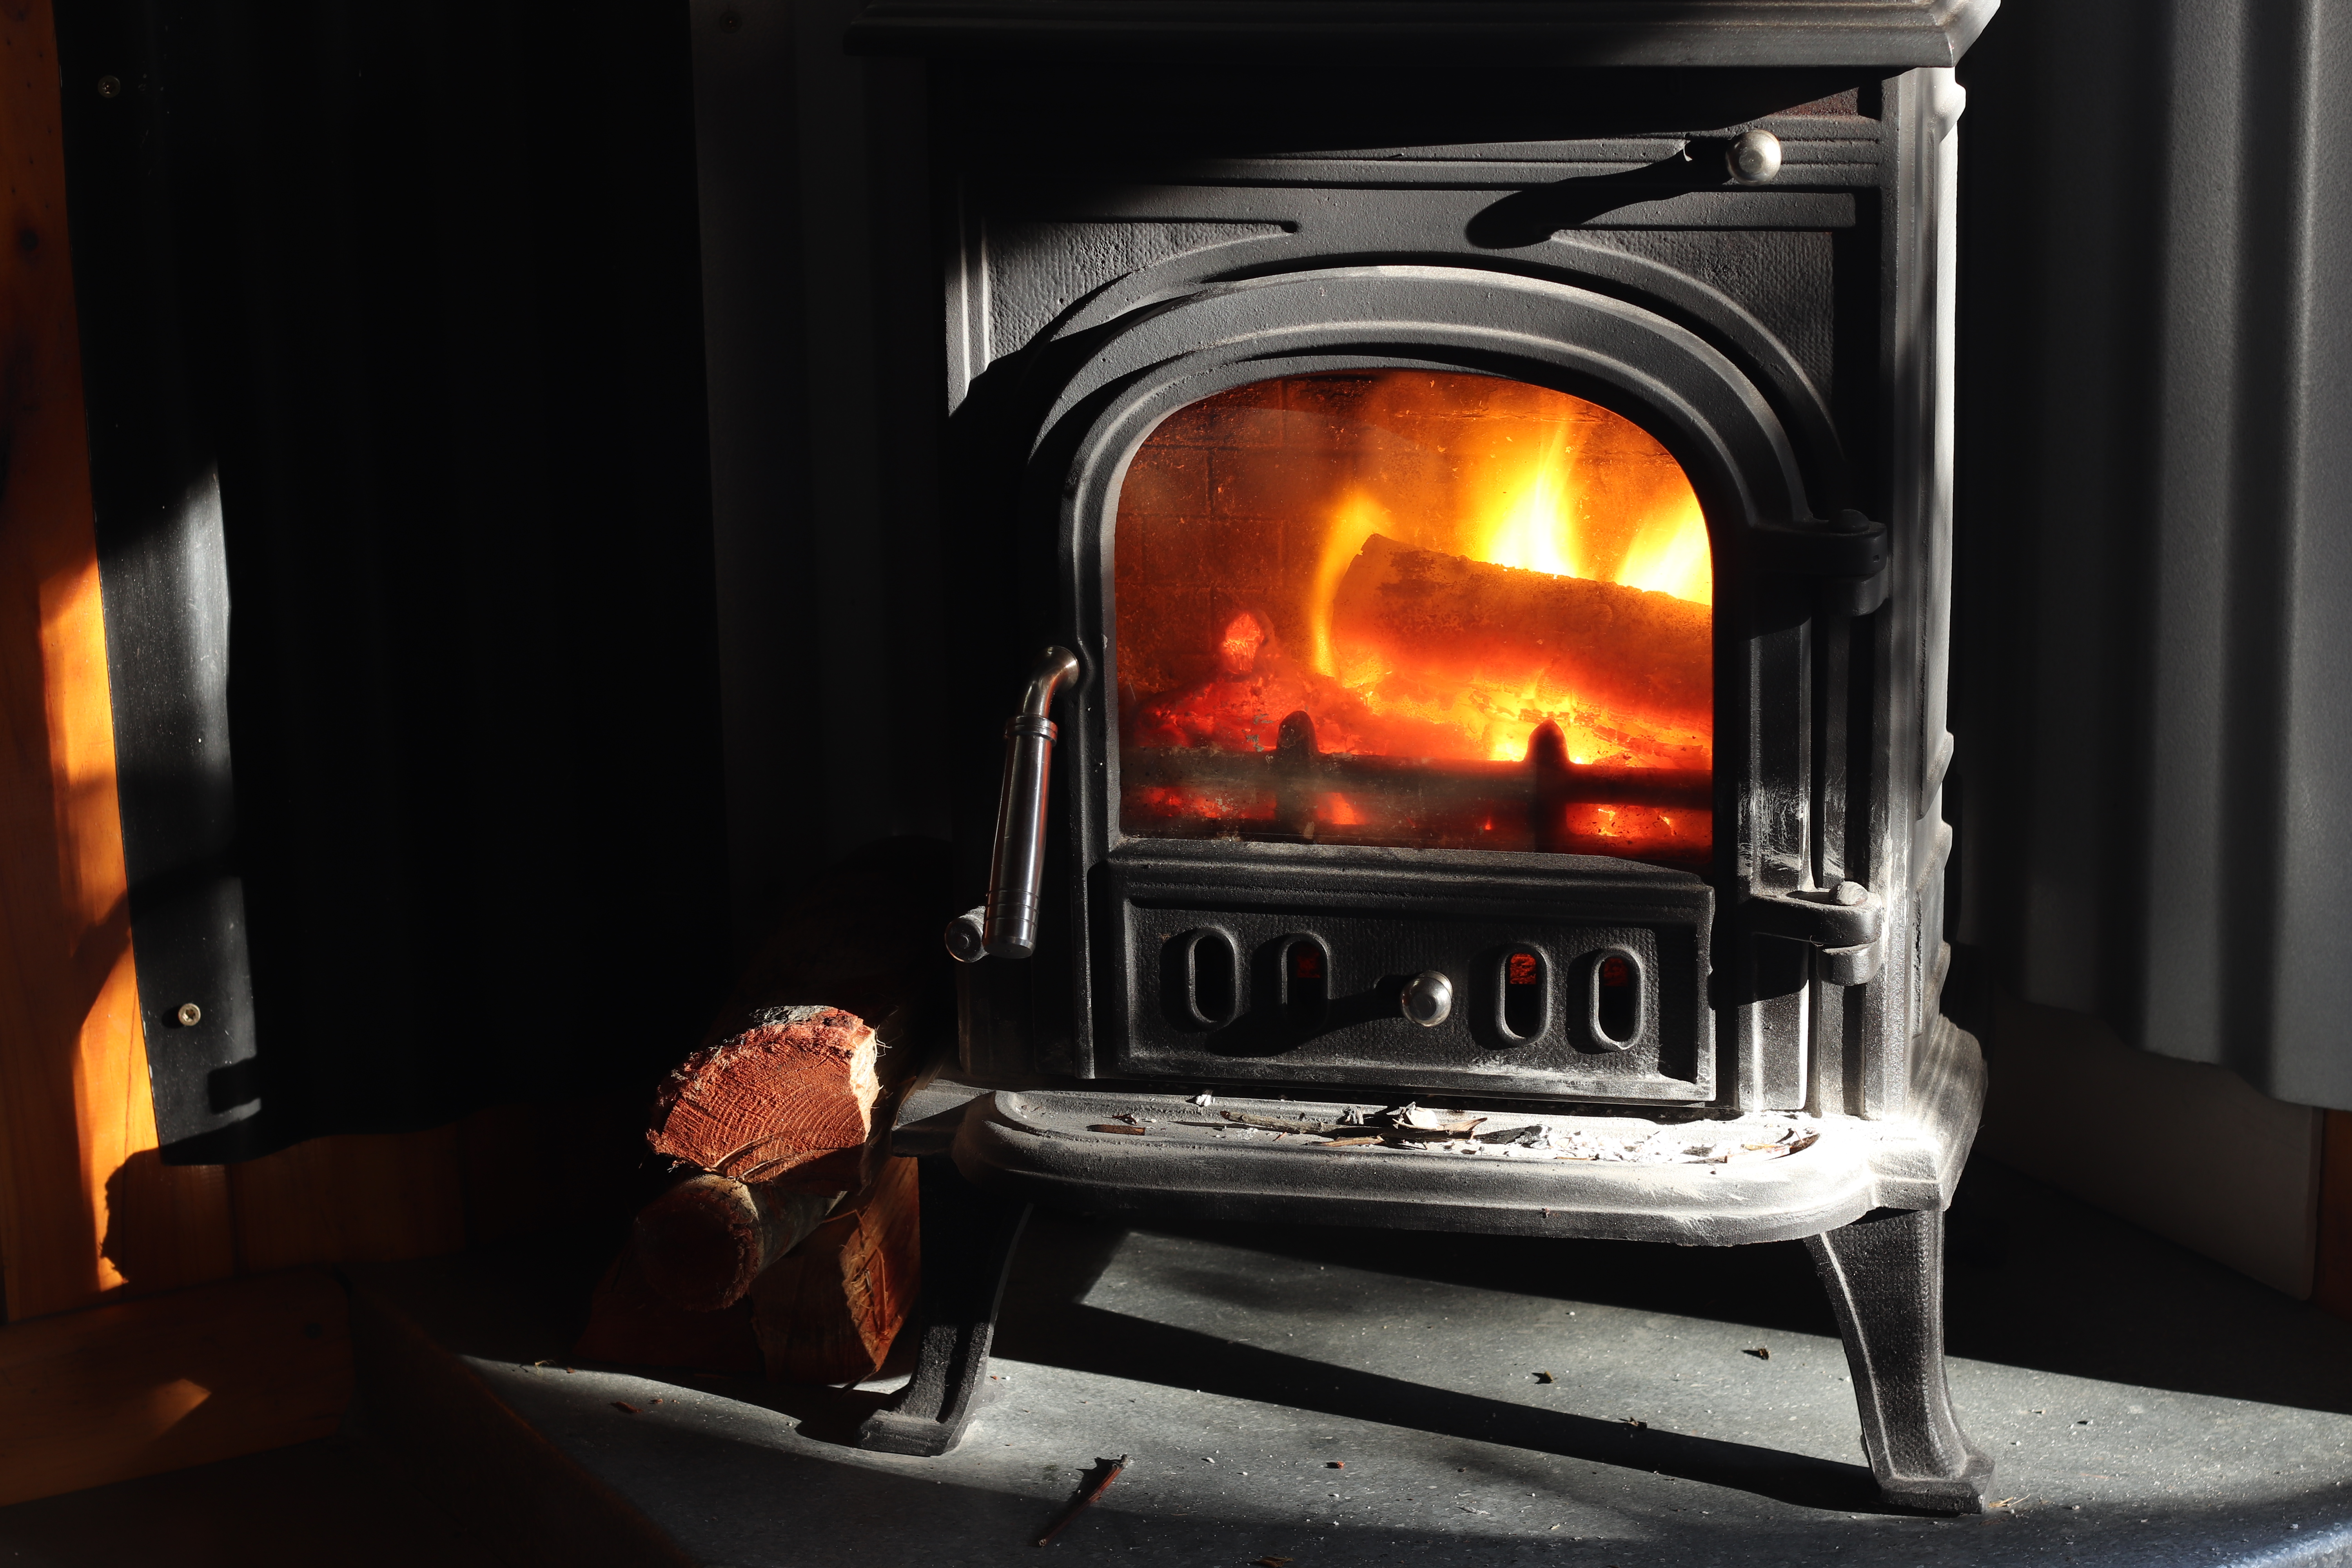 How to Date a Vintage Stove | Home Guides | SF Gate